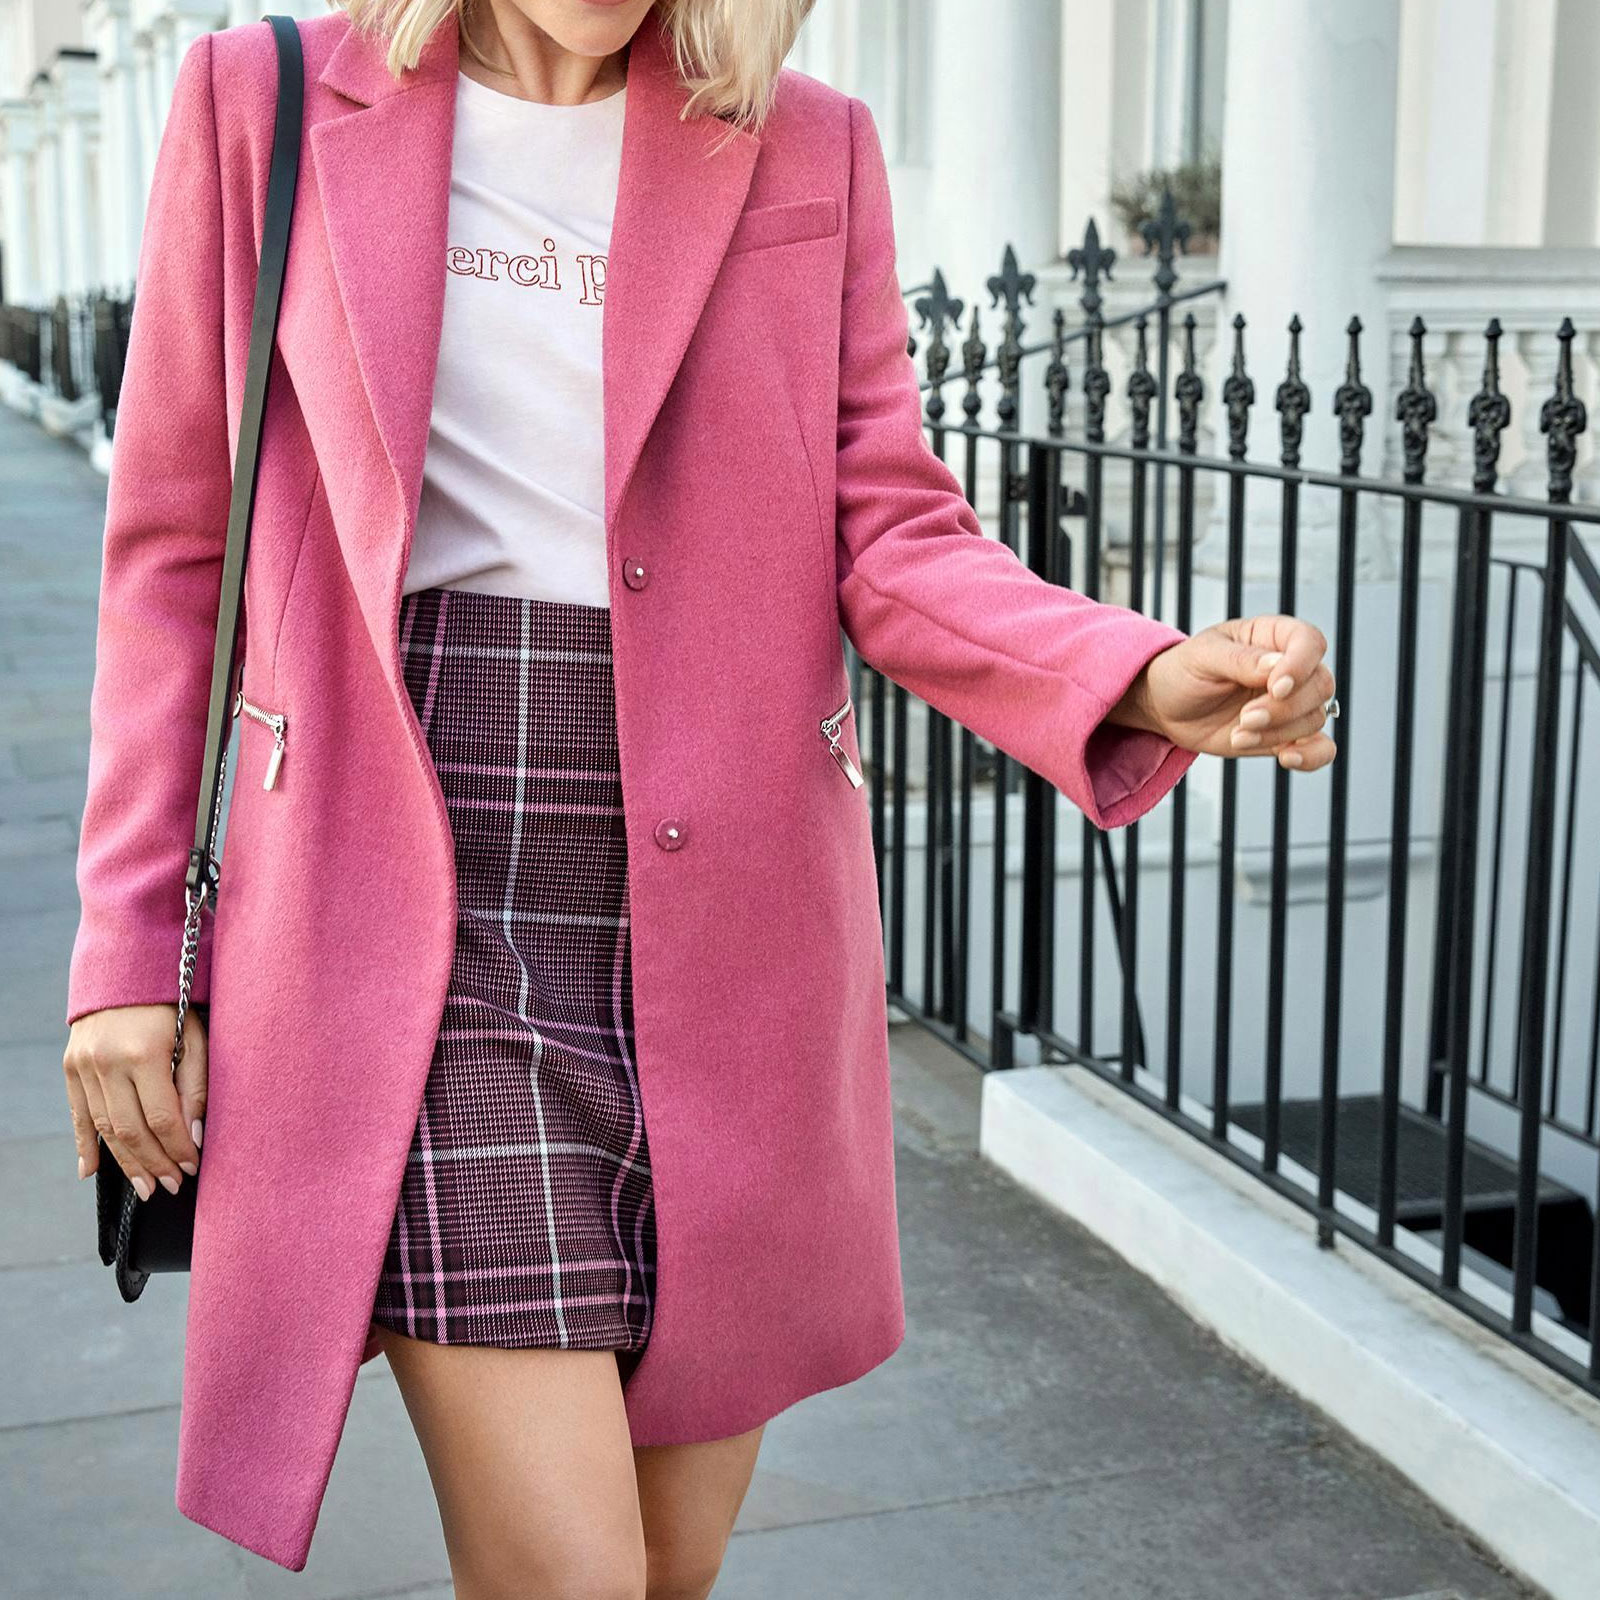 M-amp-S-Wool-Blend-Single-Breasted-Pink-Brown-Winter-Coat-Holly-Willoughby-Size-6-24 thumbnail 41